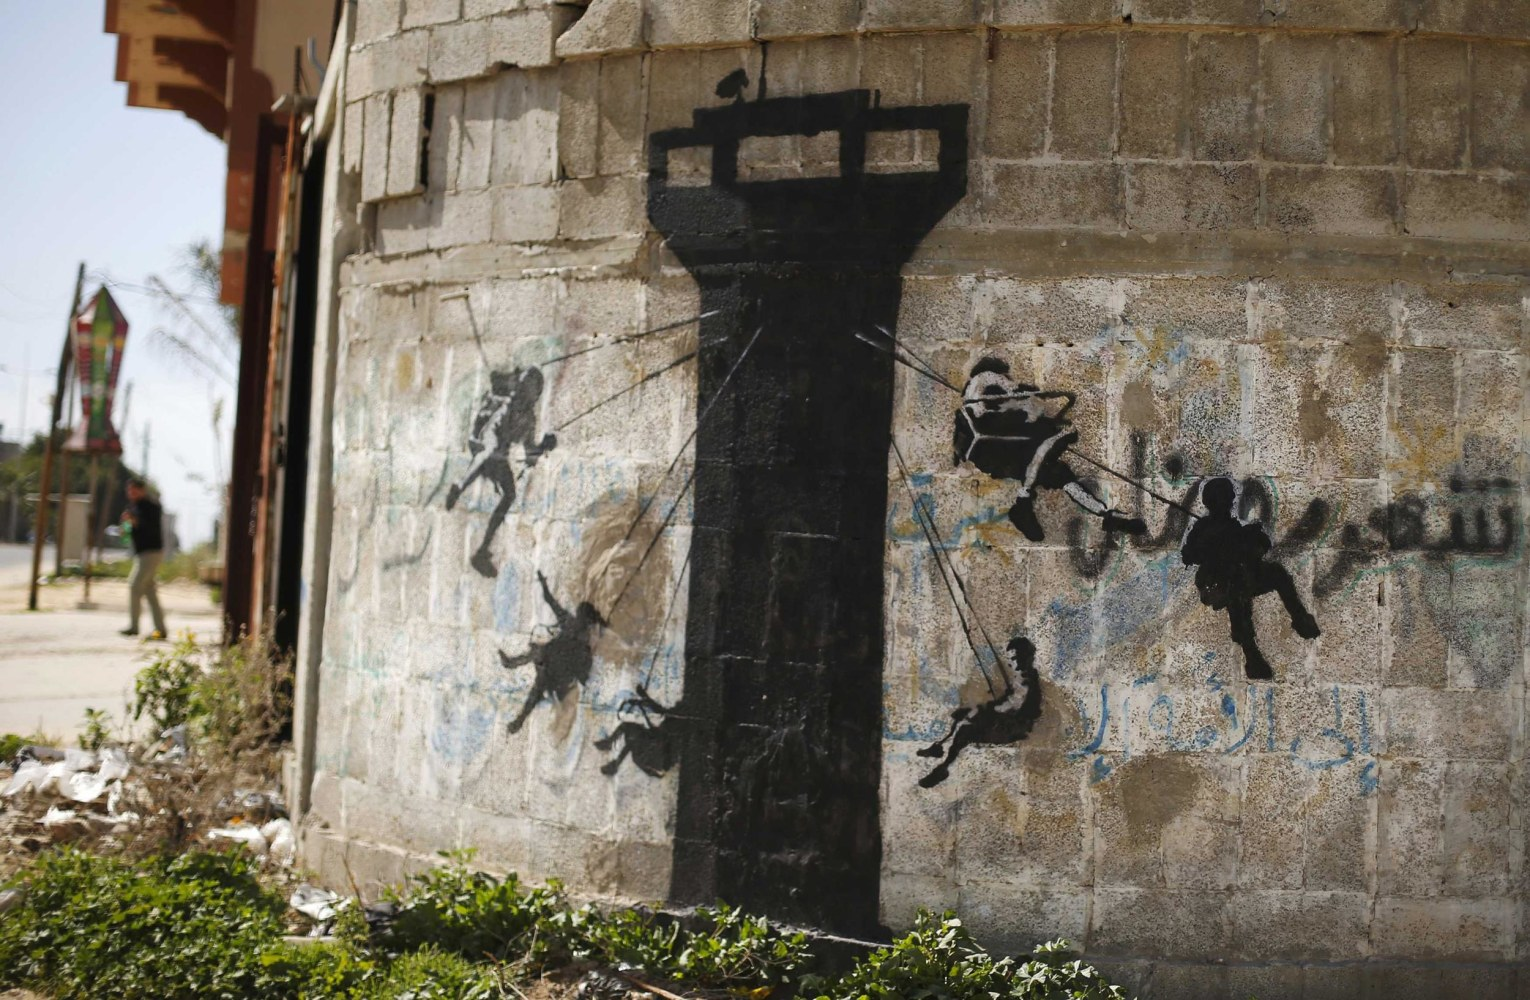 Internet cats banksy kitten highlights gaza 39 s plight for Banksy mural painted over